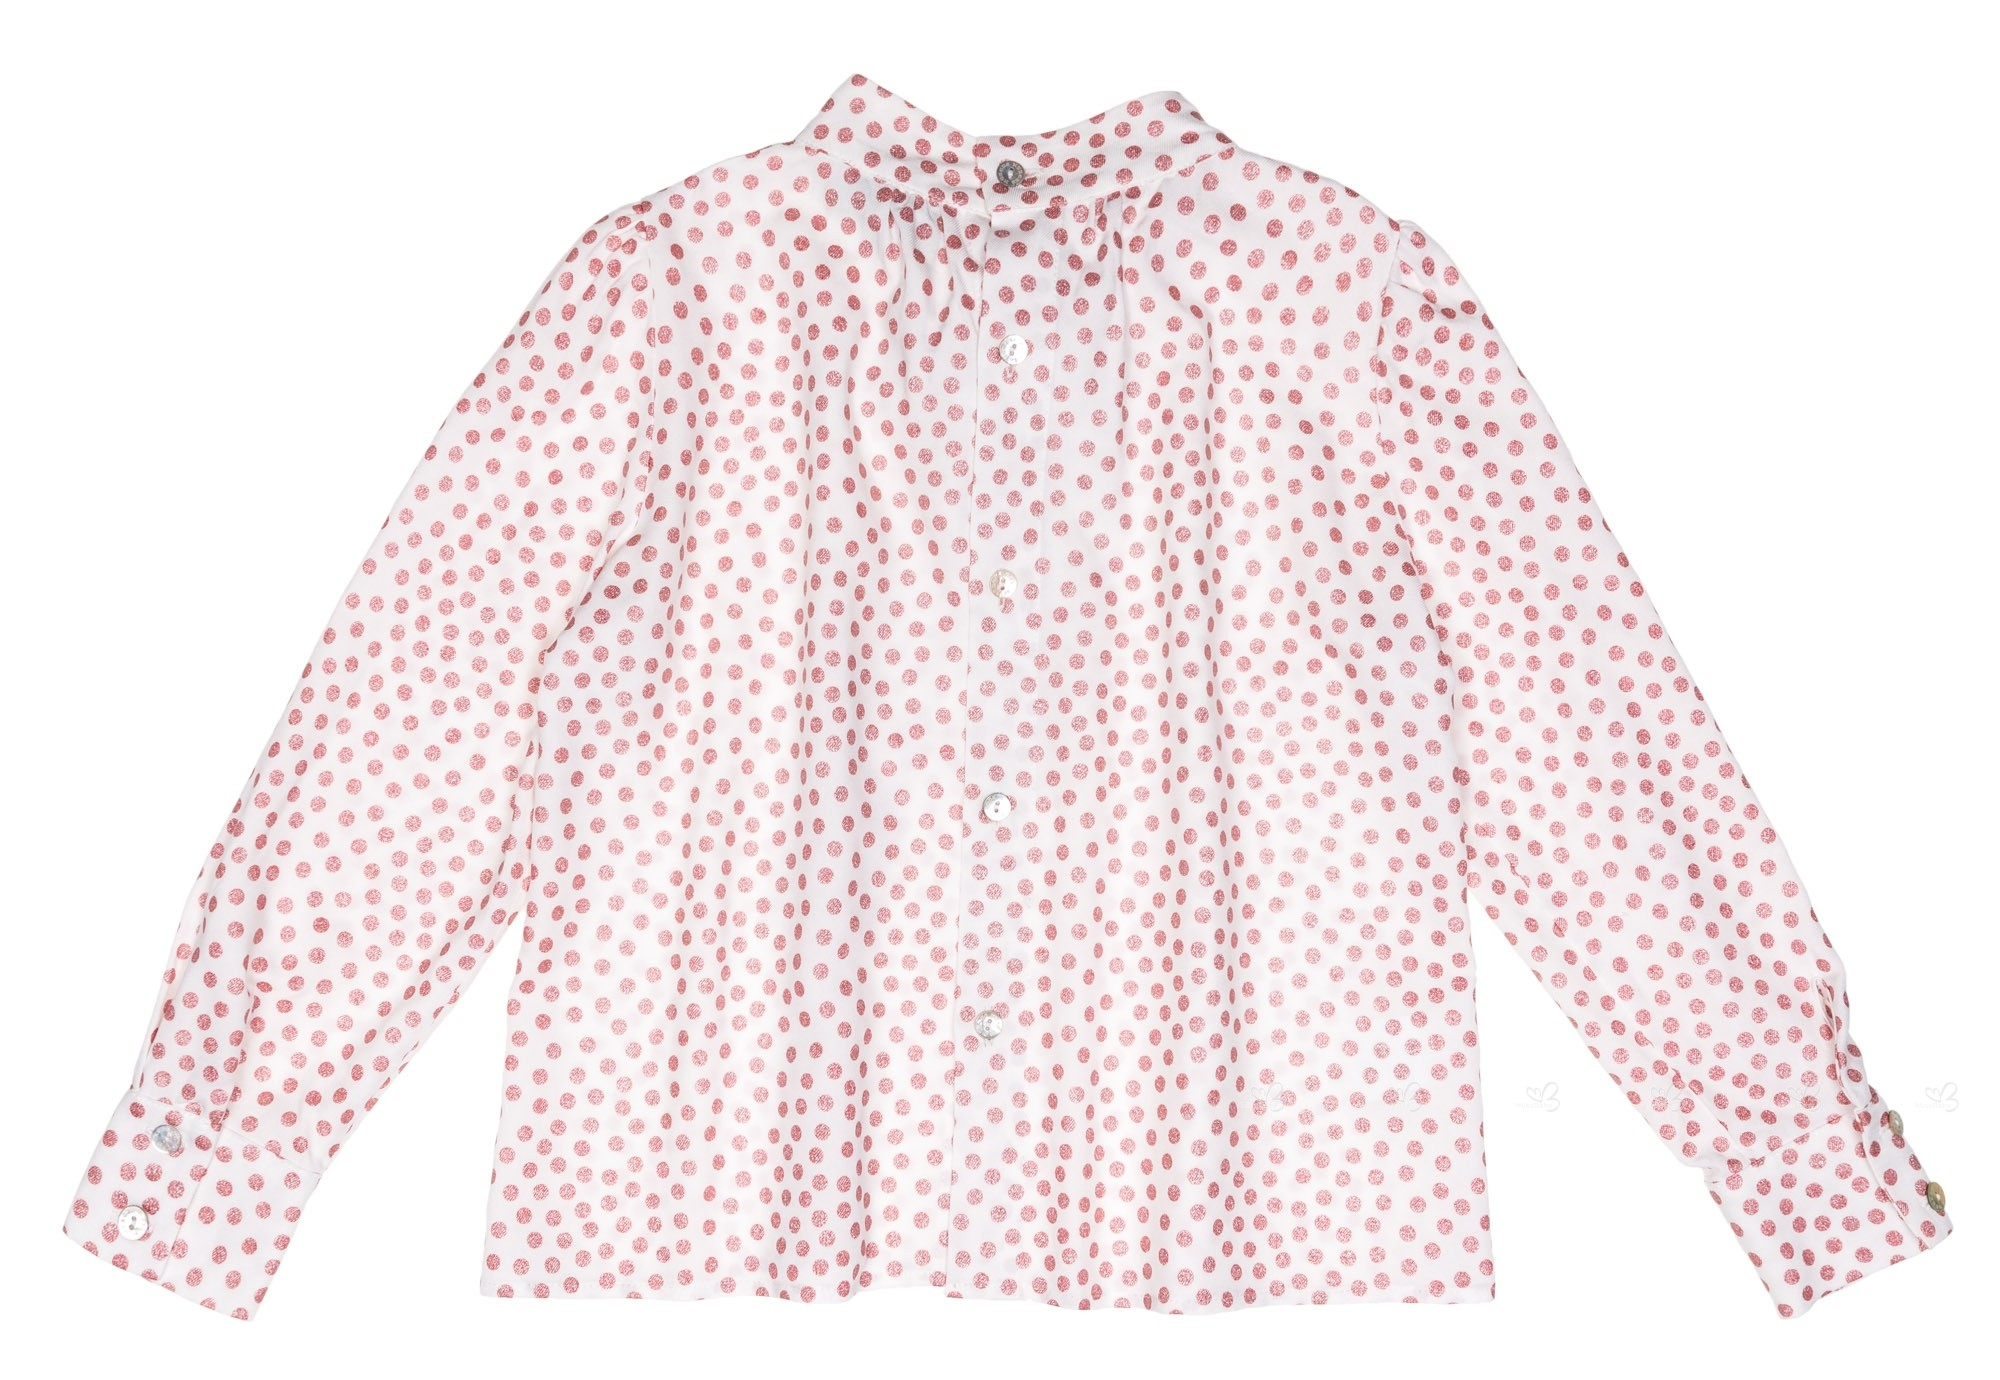 White Blouse With Pink Polka Dots